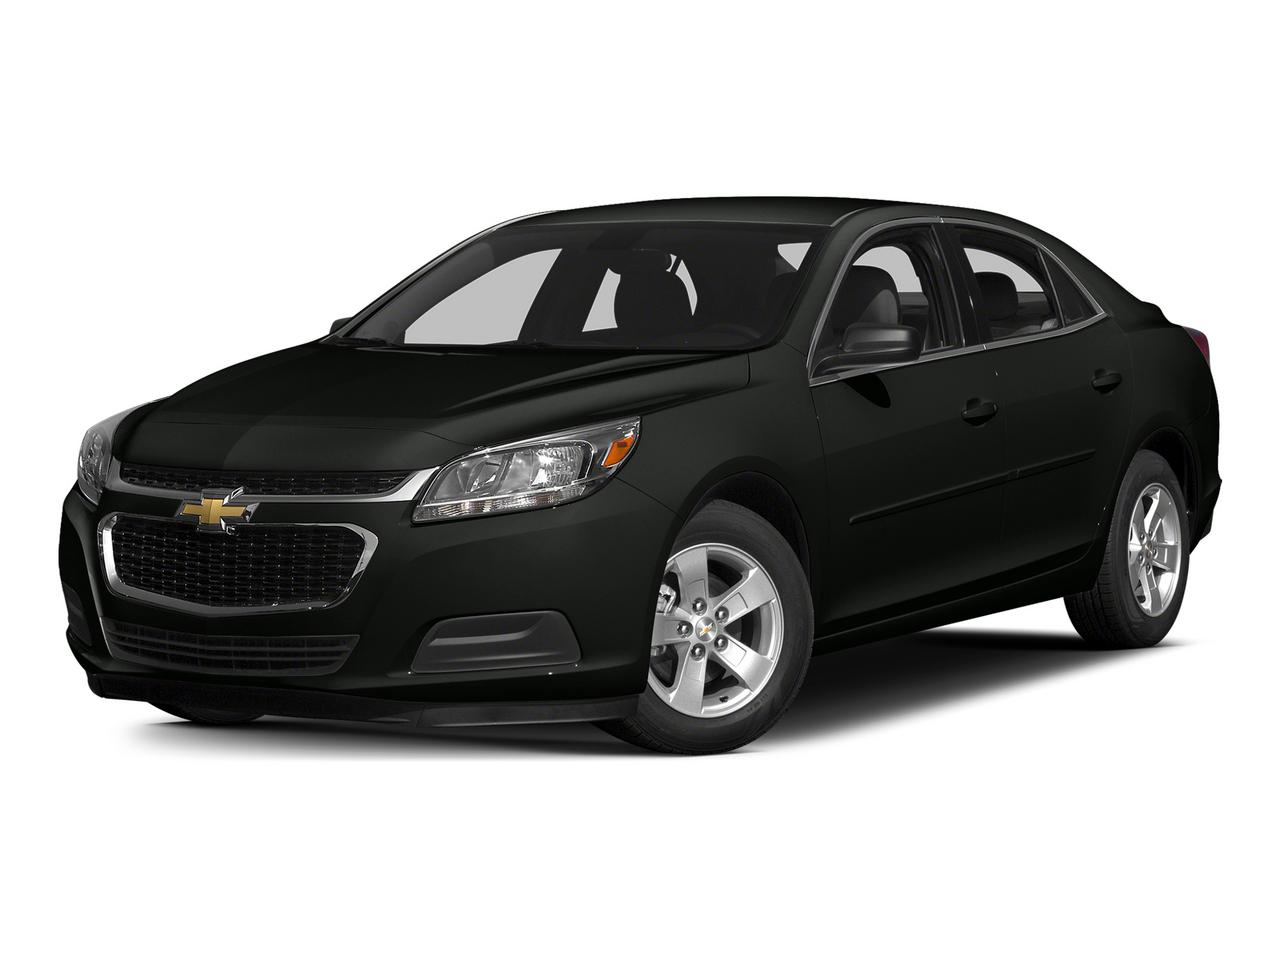 2015 Chevrolet Malibu Vehicle Photo in Williamsville, NY 14221